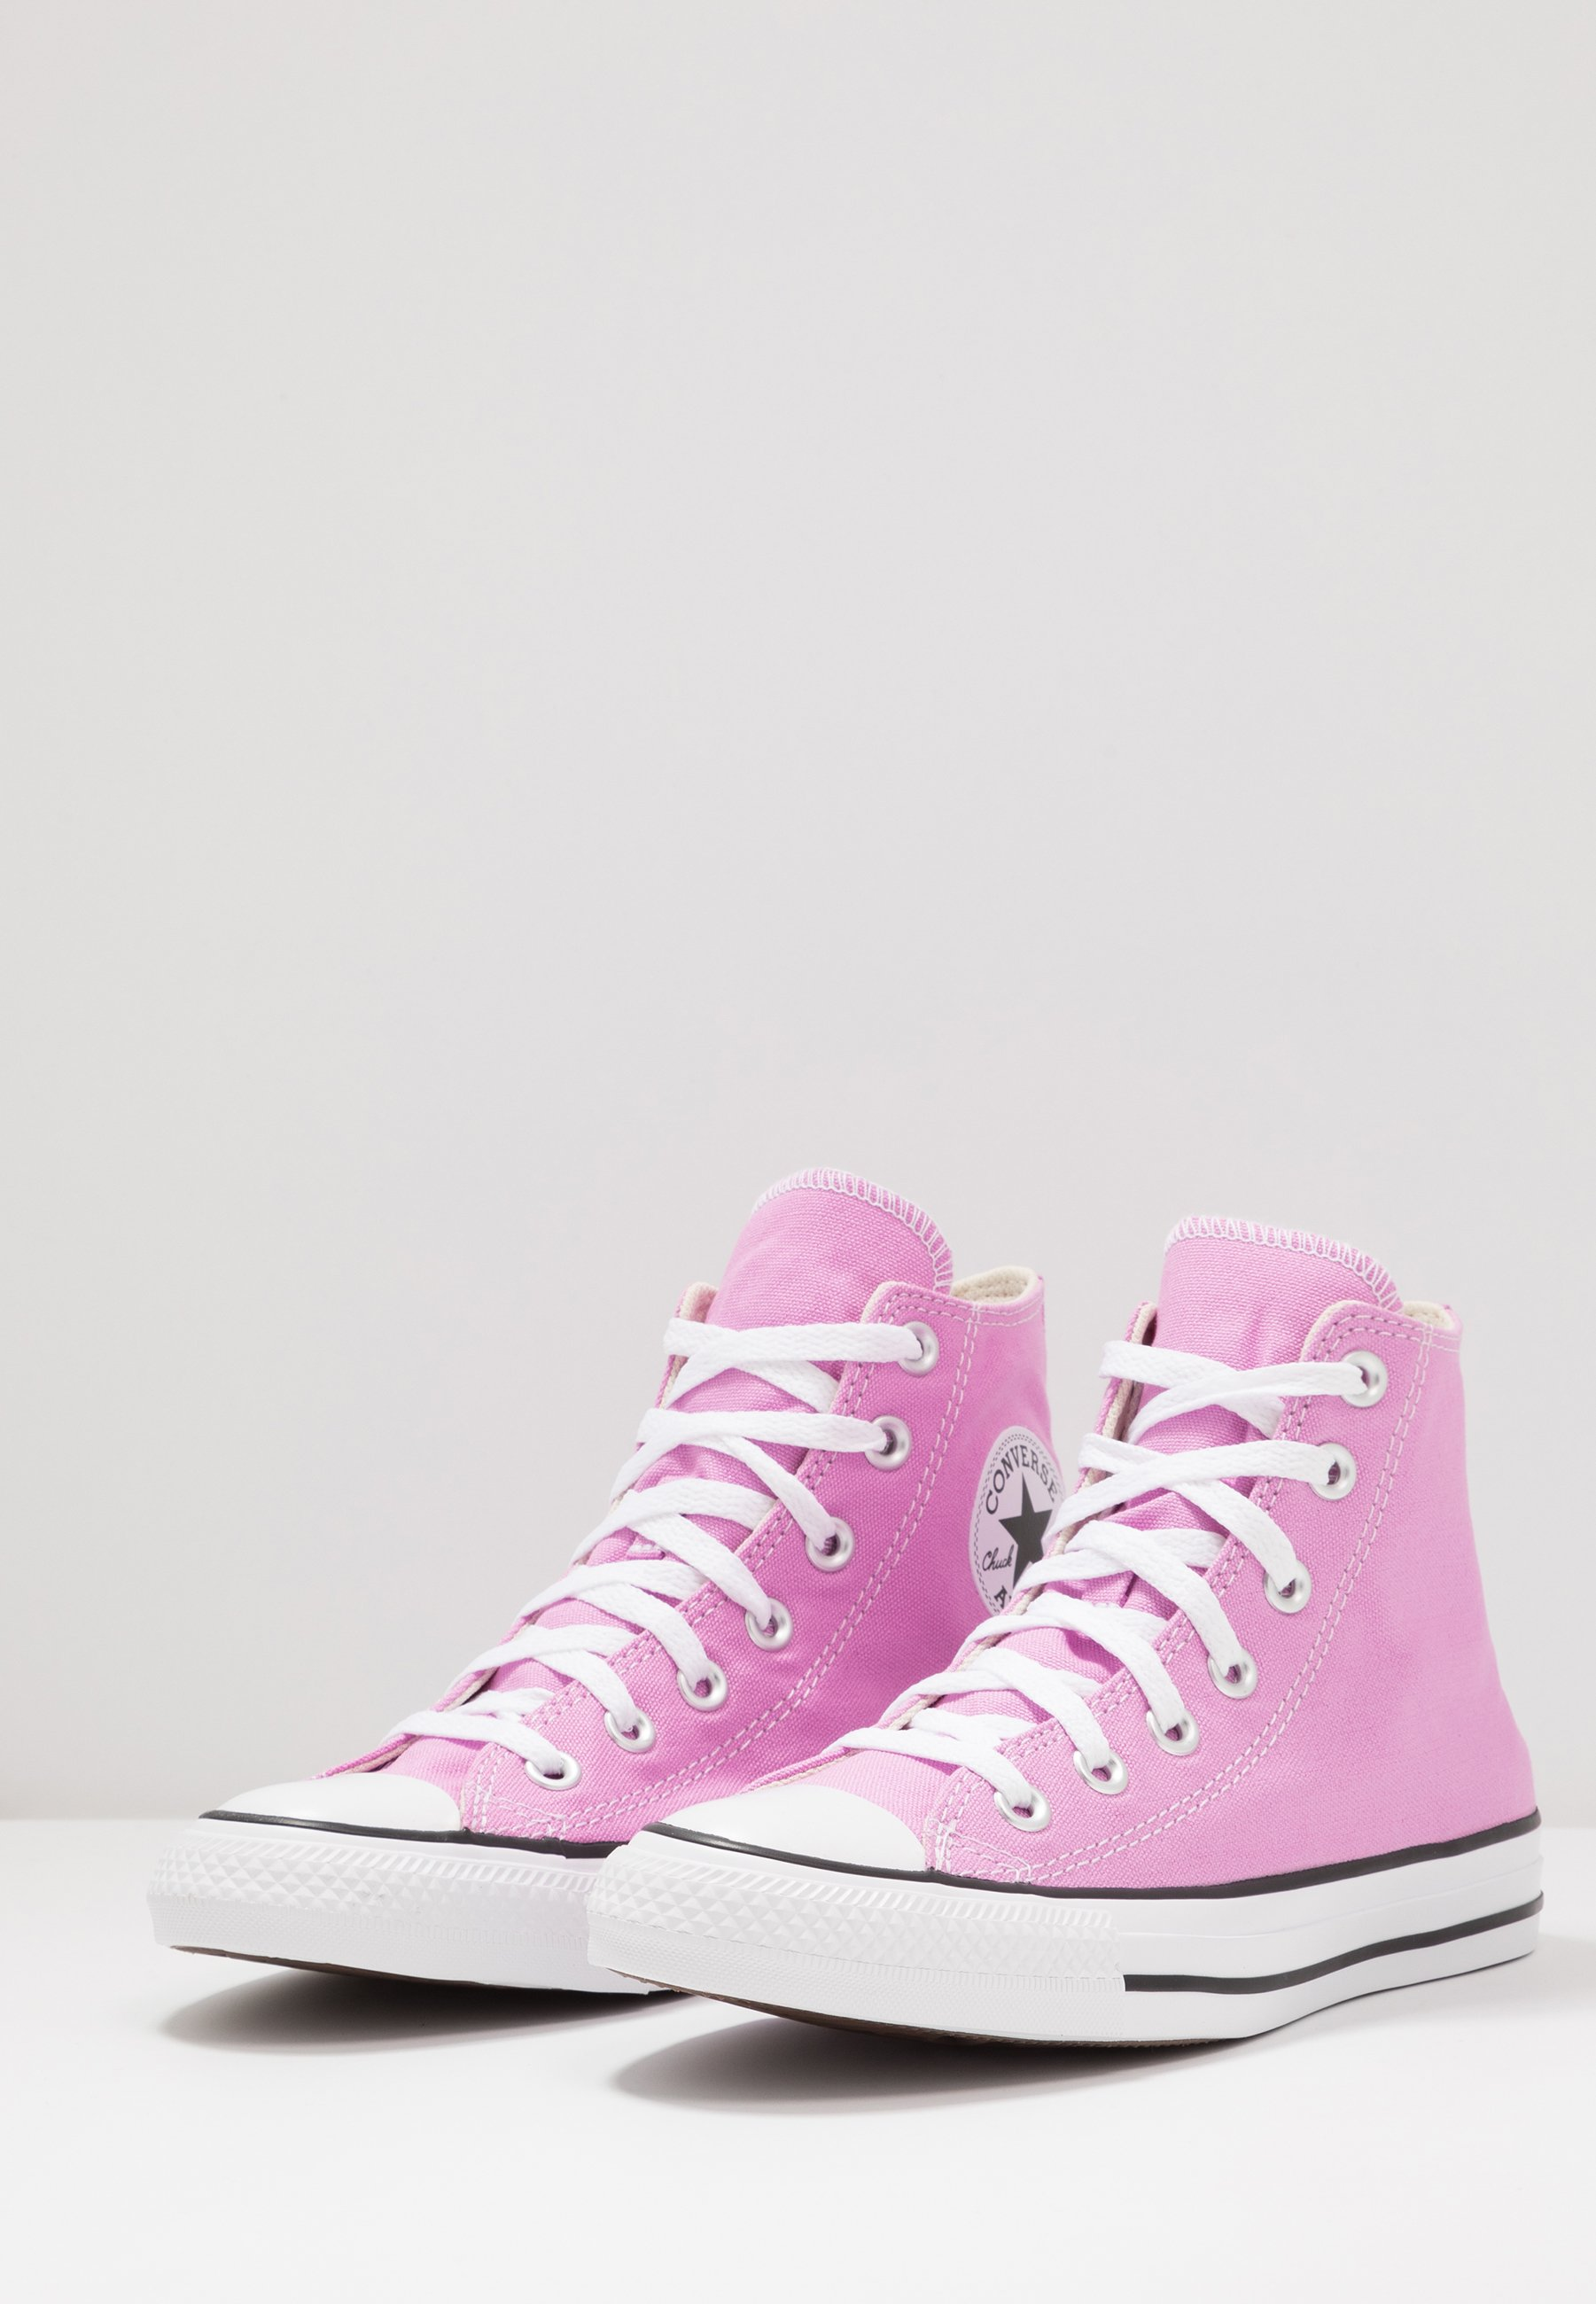 Converse Chuck Taylor All Star - Sneaker High Peony Pink Black Friday WiE0Bi0e